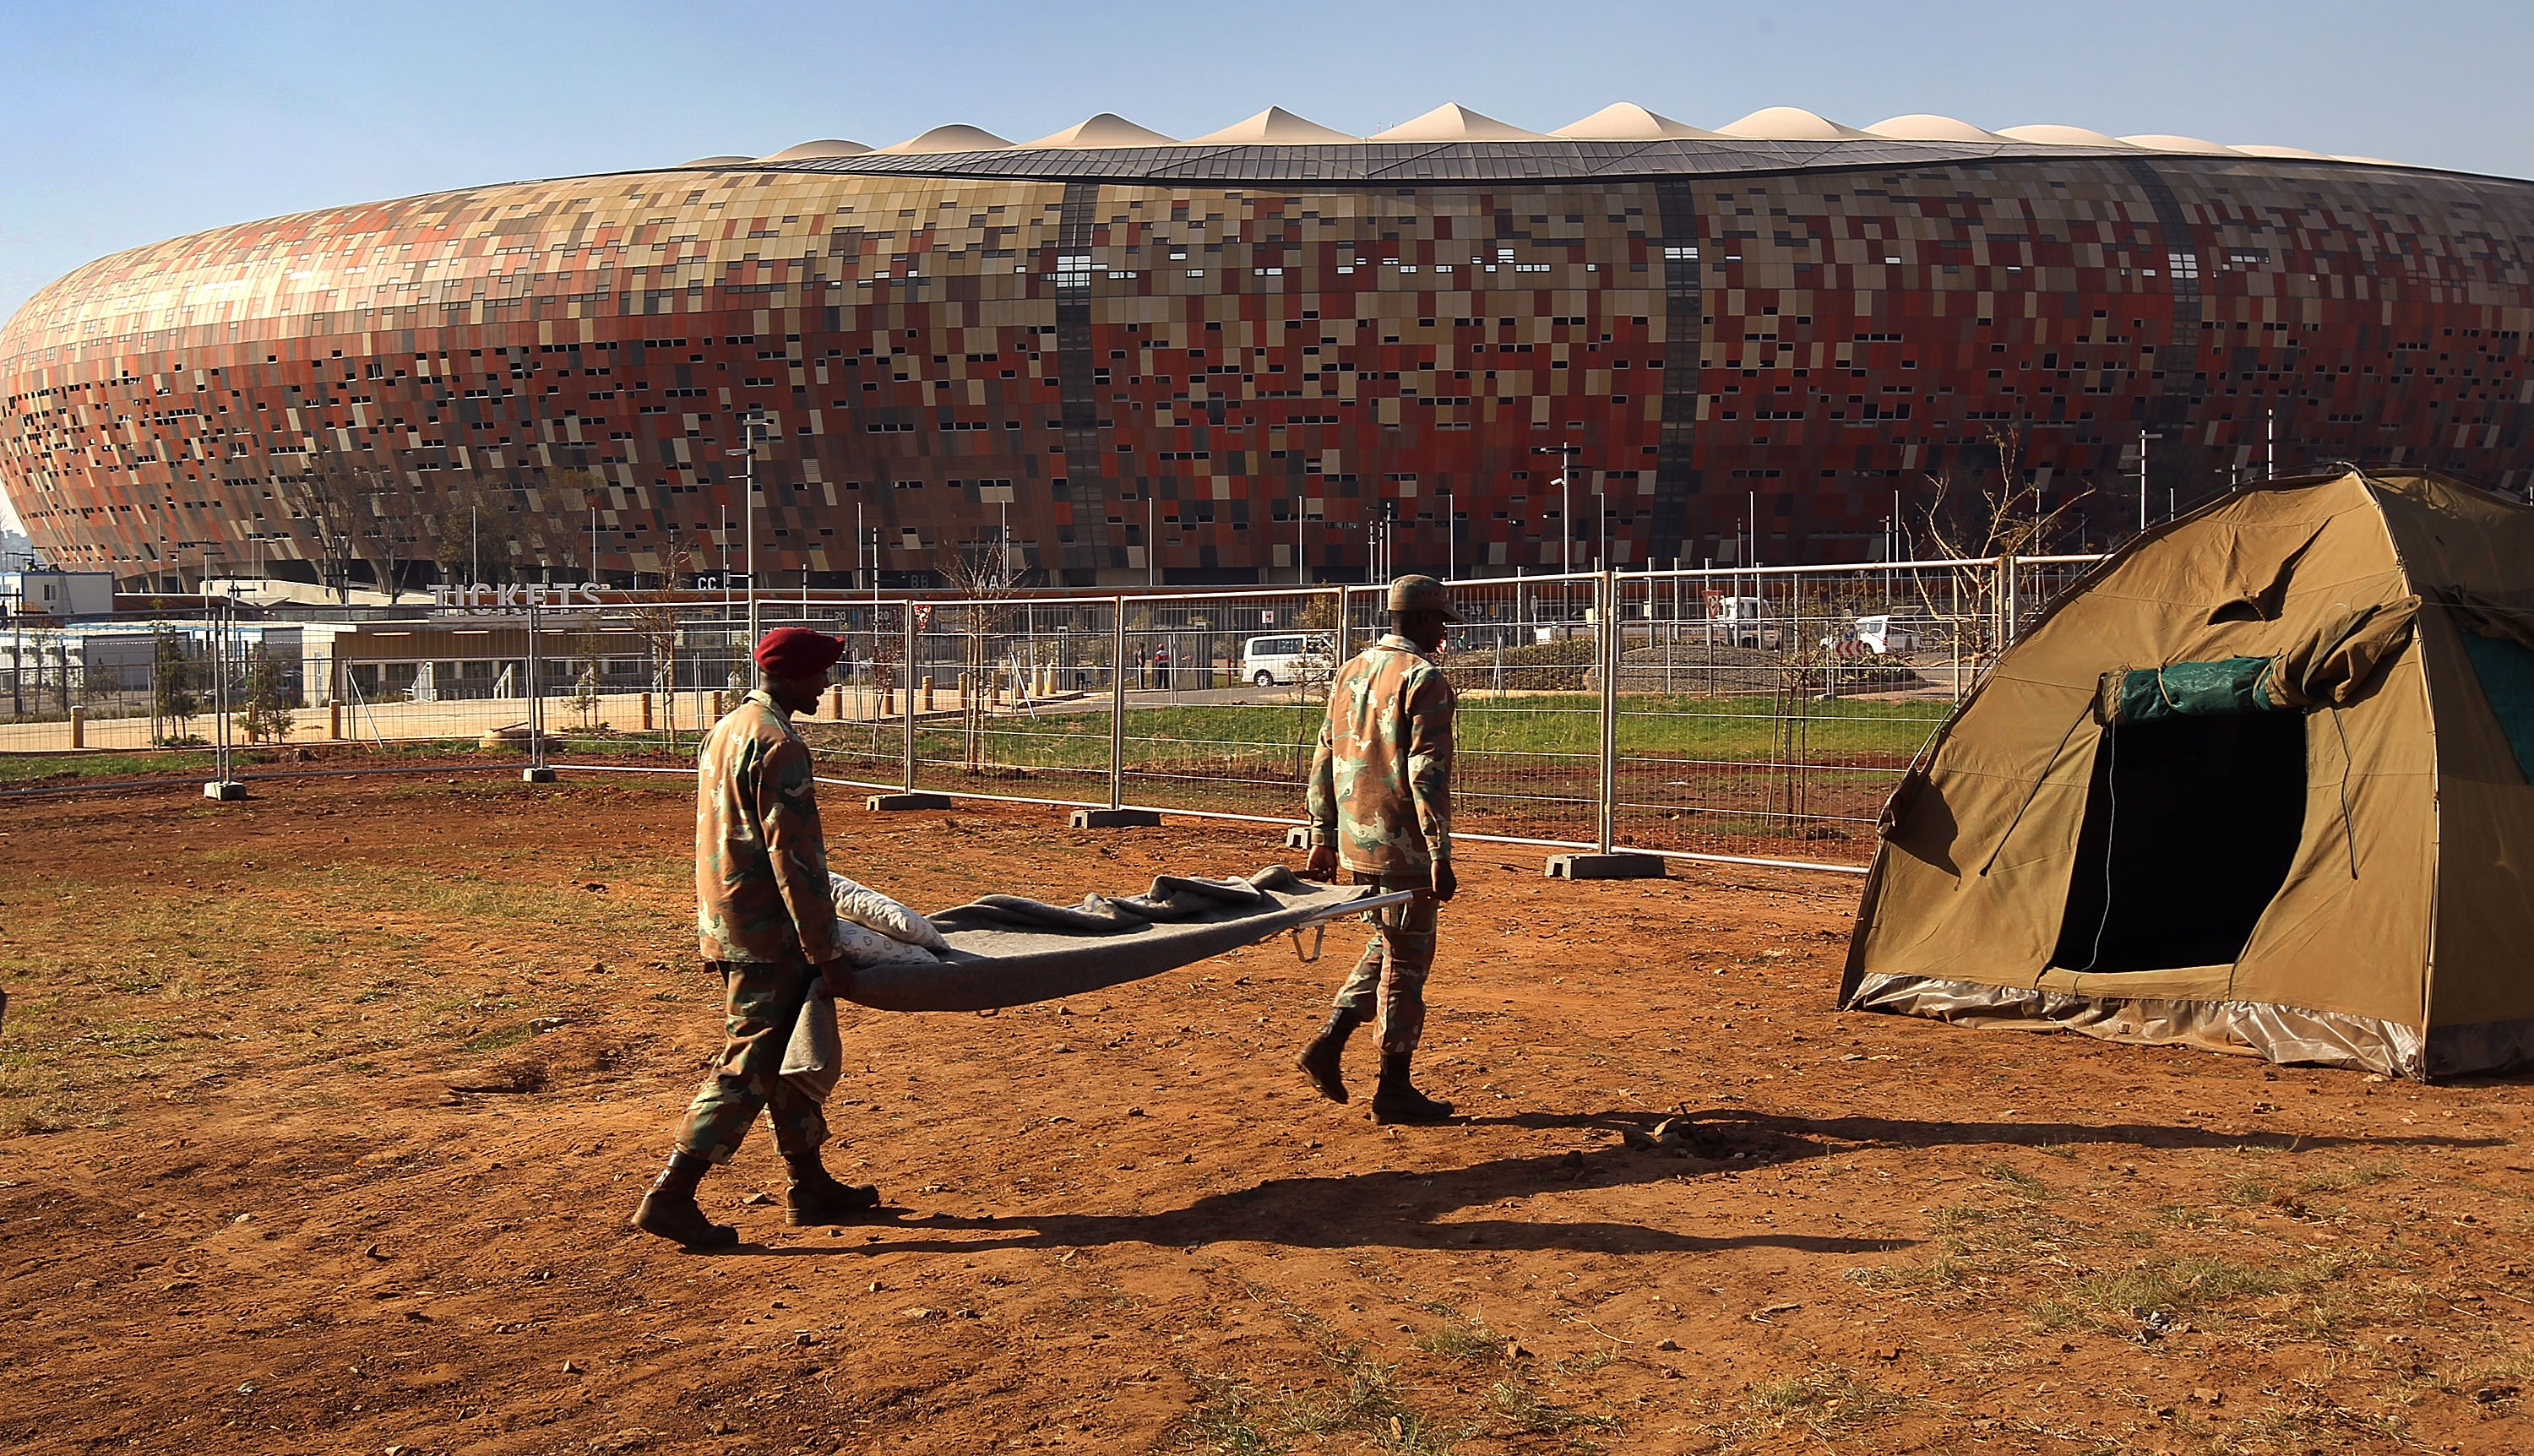 JOHANNESBURG, SOUTH AFRICA - JUNE 03:  South African army troops carry a stretcher while setting up a medical center outside the Soccer City stadium on June 3, 2010 in Johannesburg, South Africa. The medical center, to be staffed by the military, is prepa